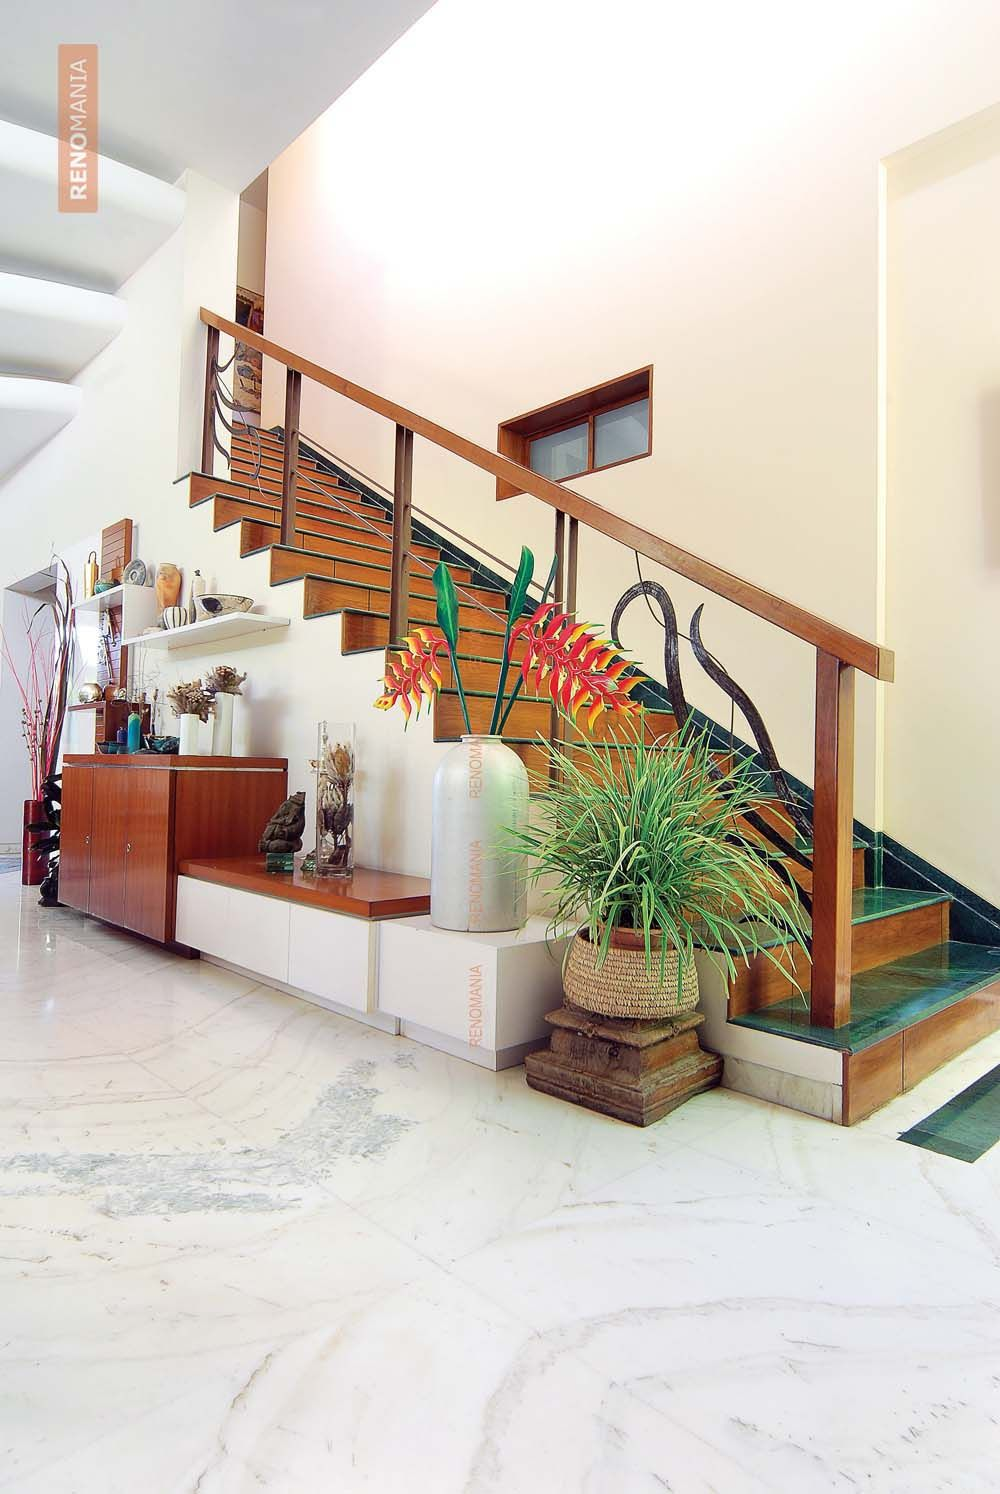 M I Tihg 2009 06 Jhunjhun Dsc 8832 Copy Exterior Stairs | Interior Staircase Designs For Indian Homes